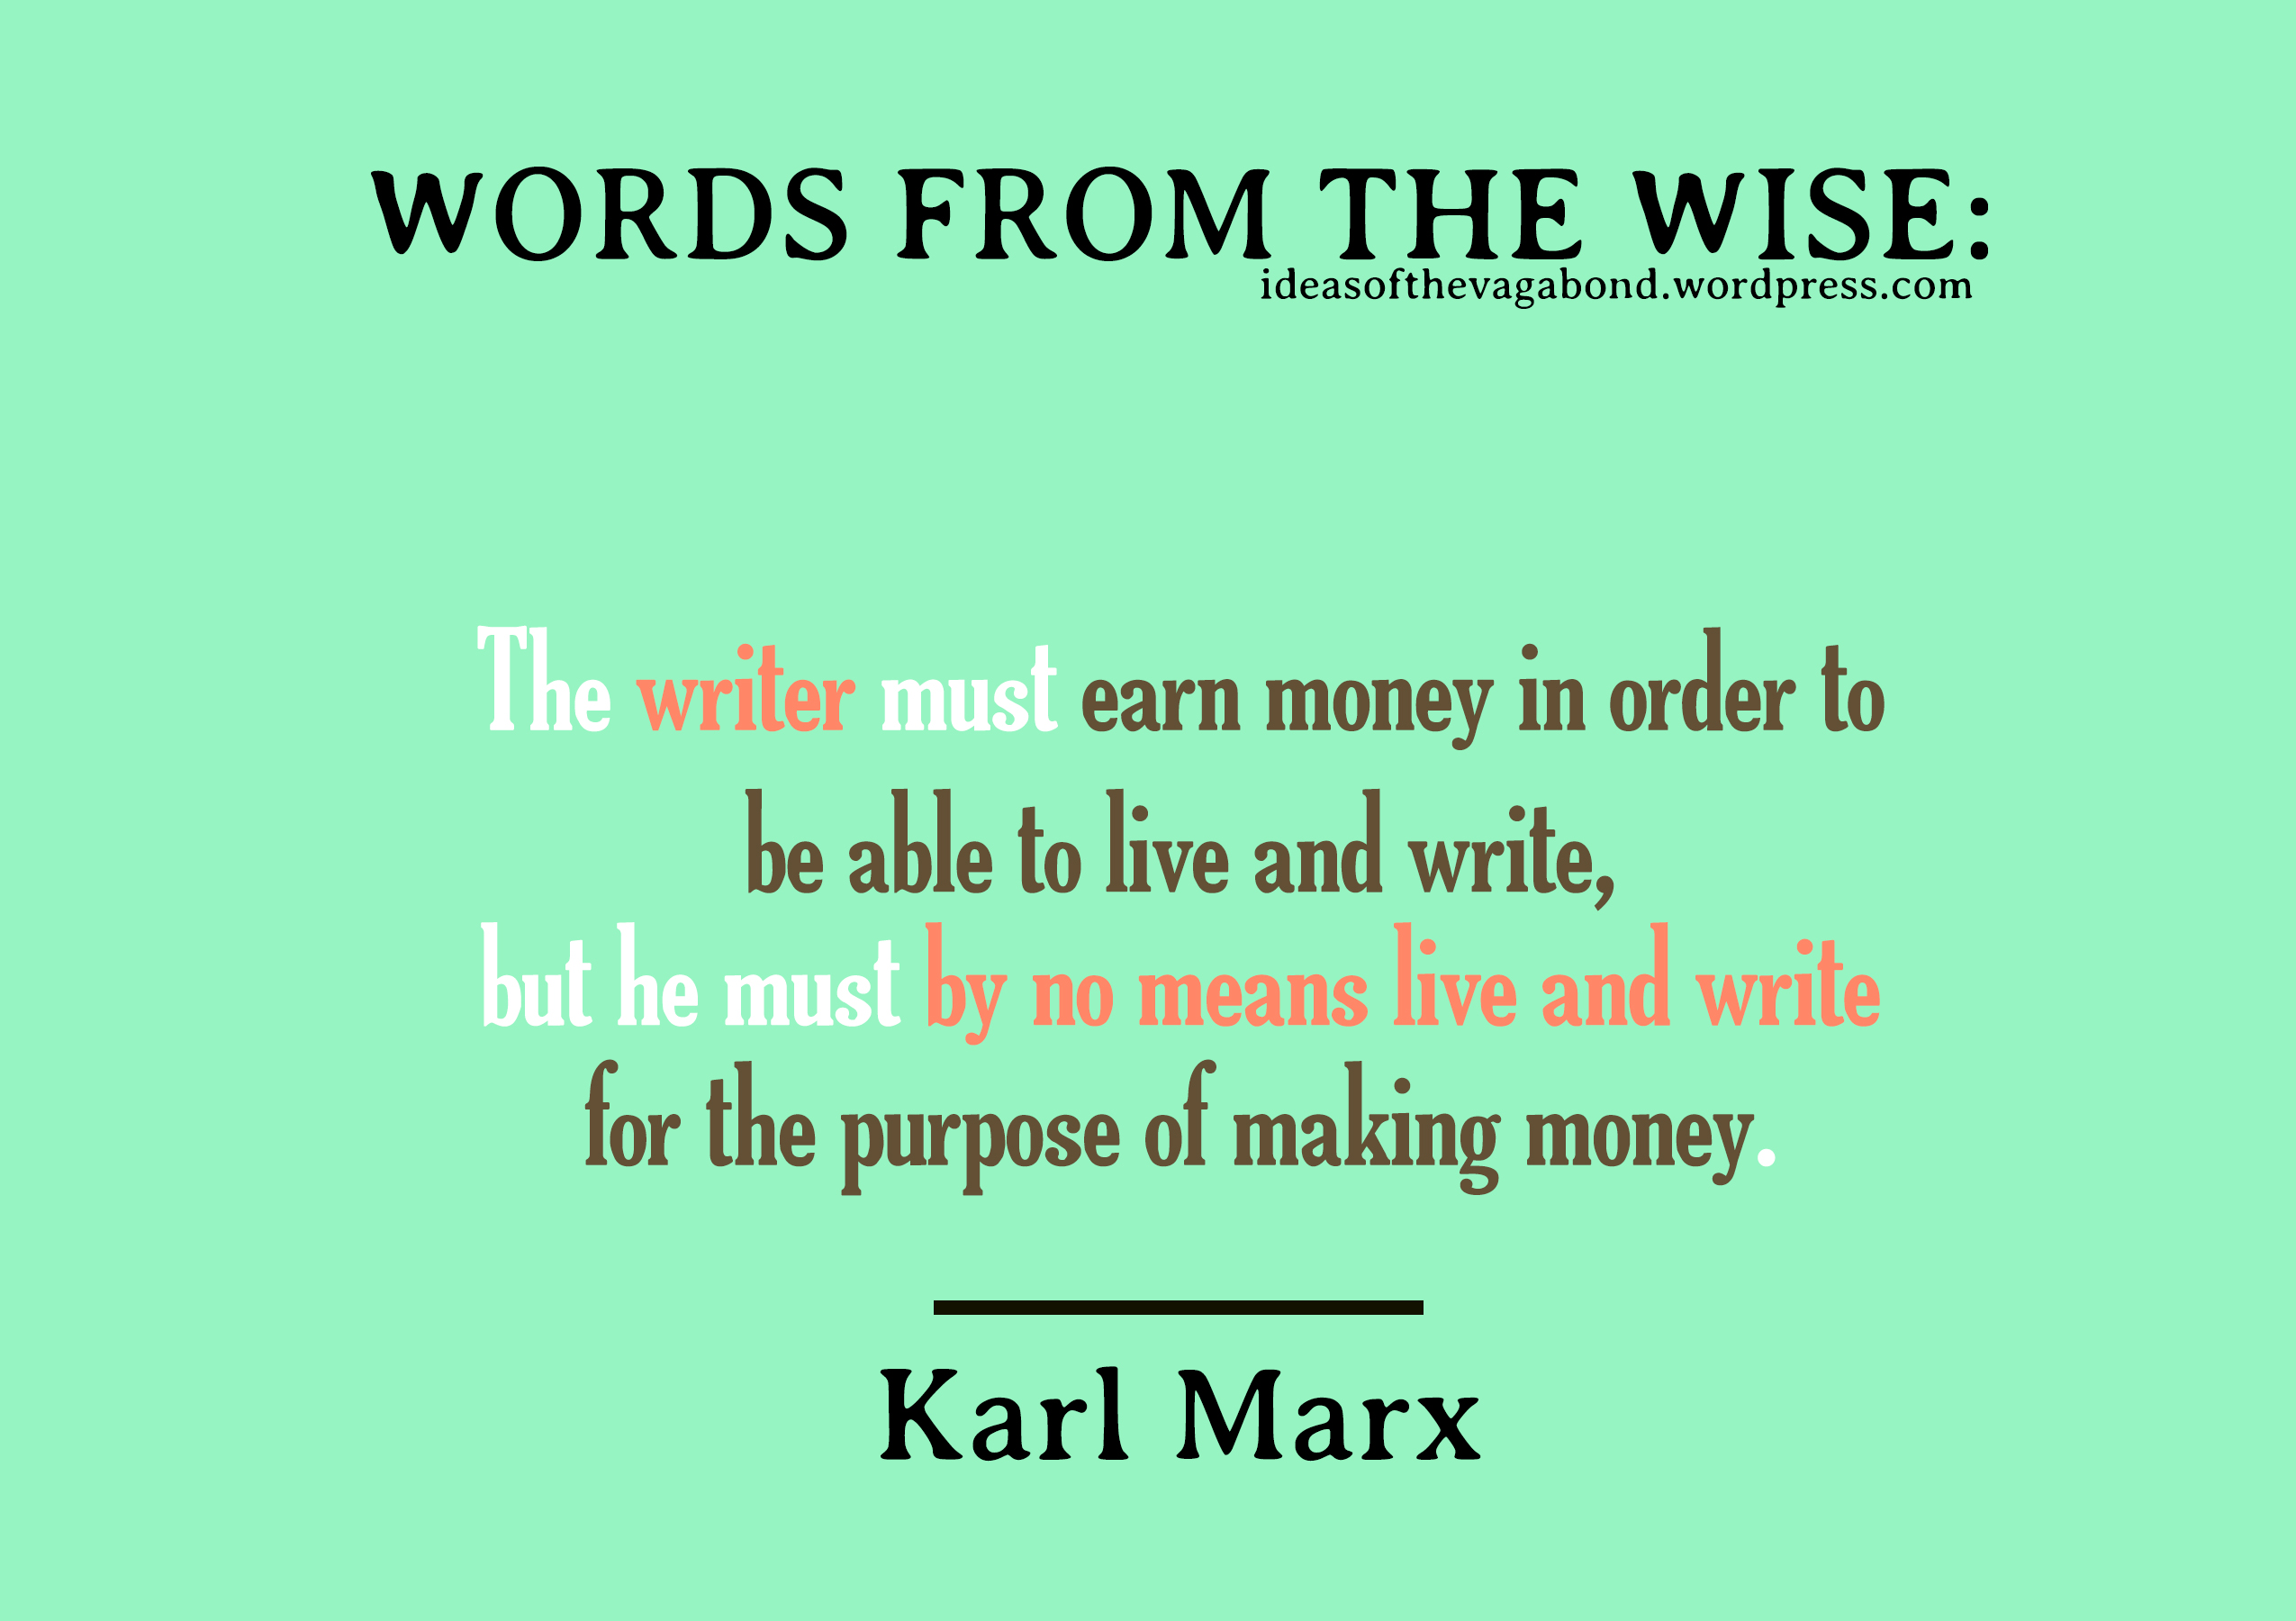 karl marx and his ideas essay